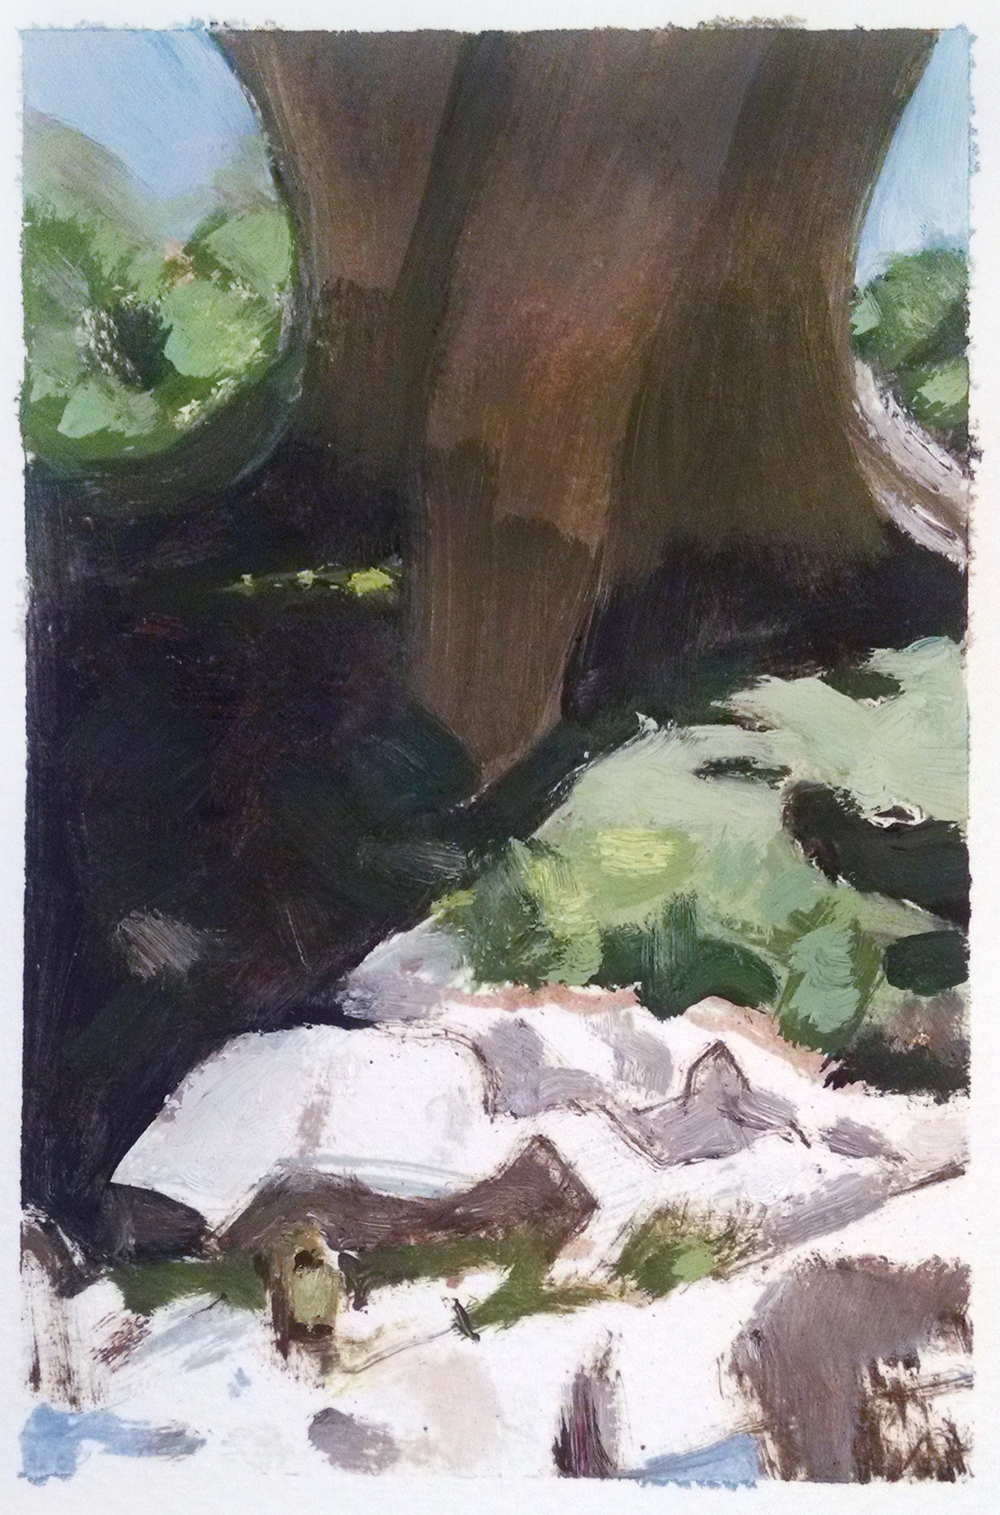 Karla at the Yuba River,  6 x 4 in.  Oil on paper. Available for purchase. (2015)